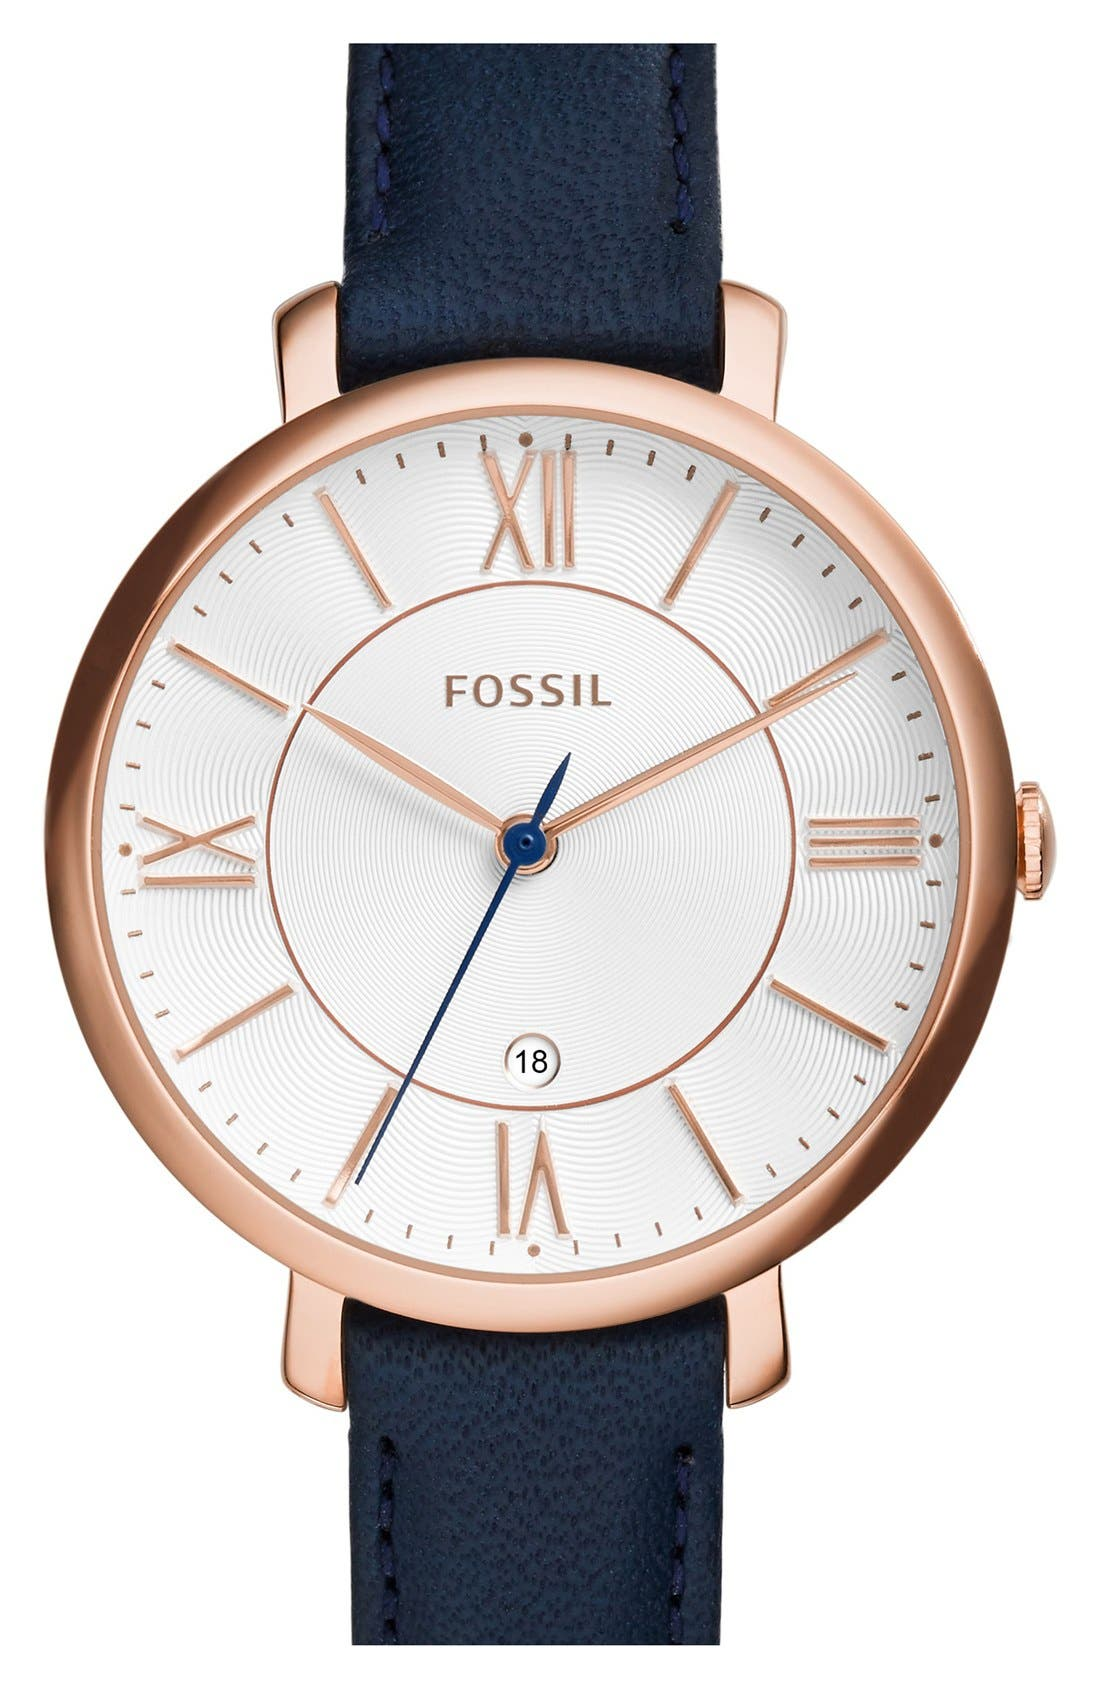 FOSSIL 'Jacqueline' Round Leather Strap Watch, 36mm, Main, color, NAVY/ ROSE GOLD